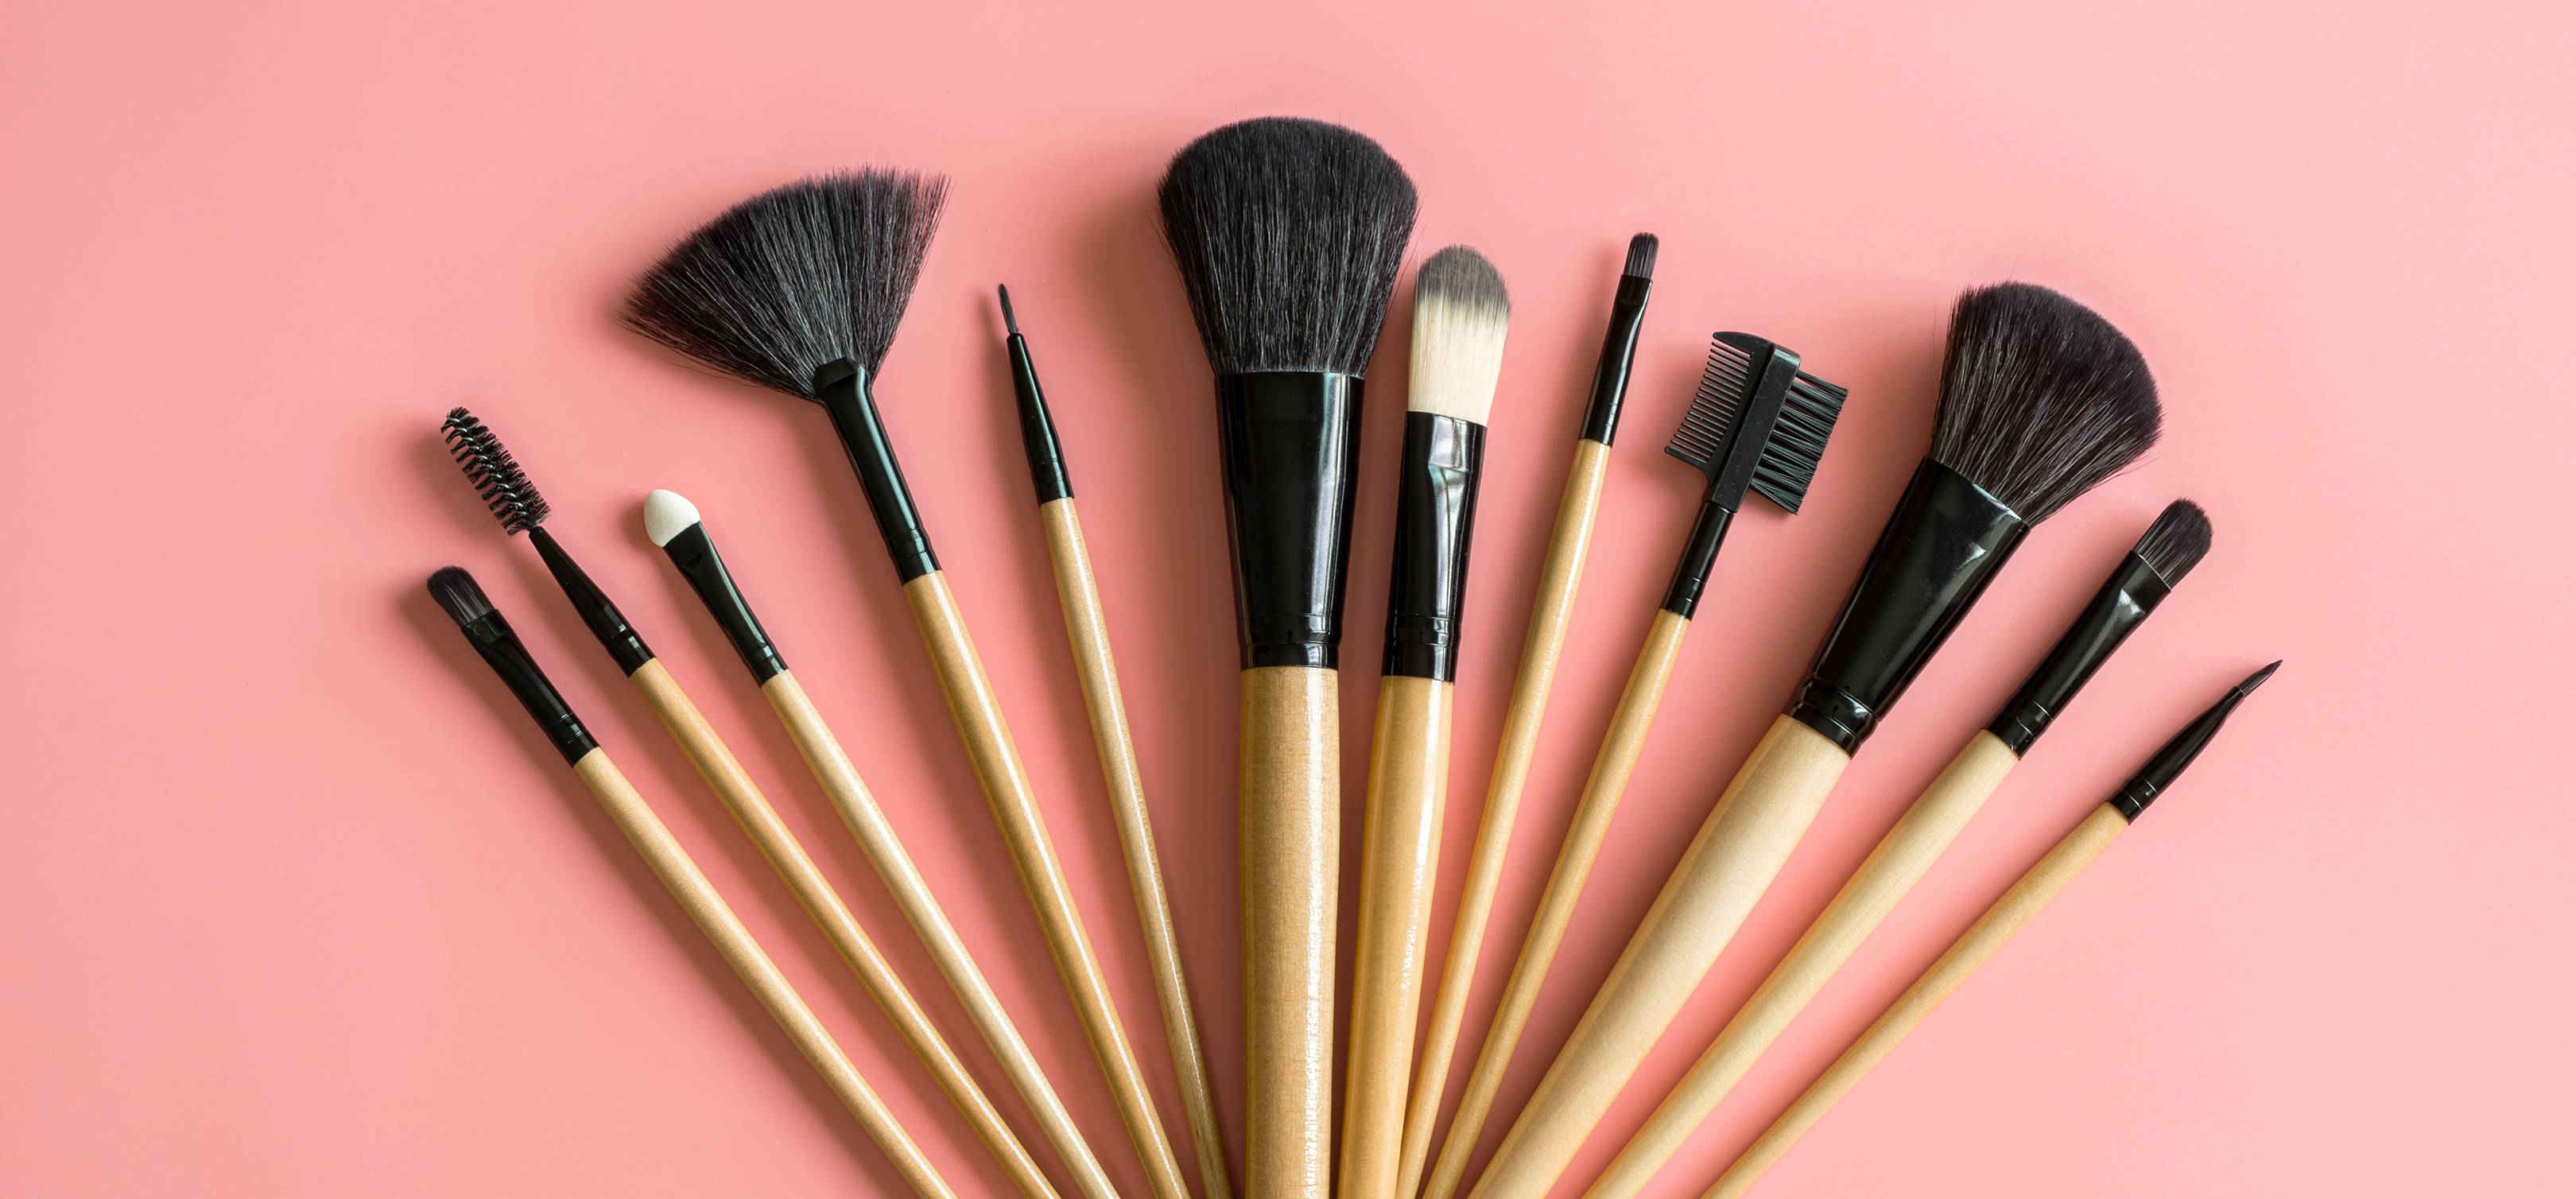 Best Makeup Brushes 2019: Best Brushes